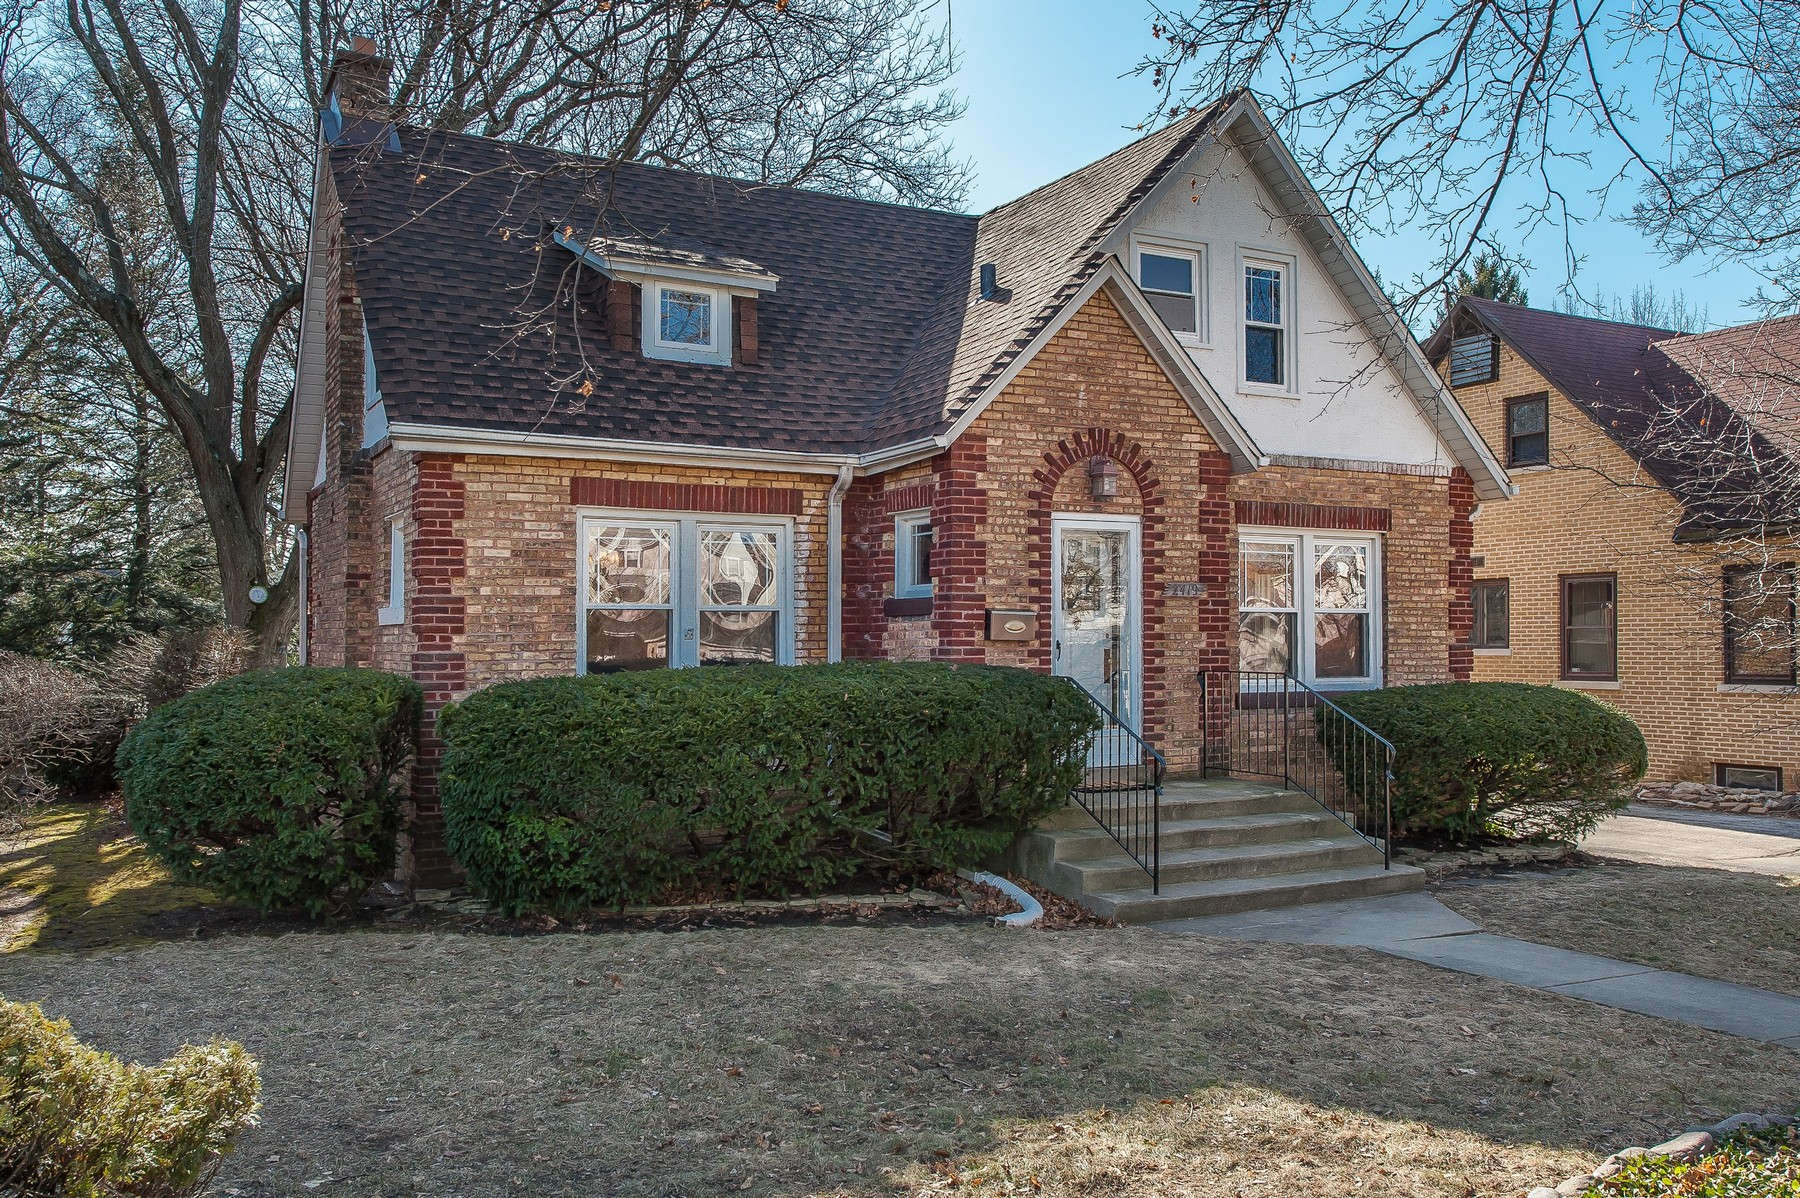 Single Family Home for Sale at Classic Center-Entry English Style Home 2419 Birchwood Lane Wilmette, Illinois, 60091 United States